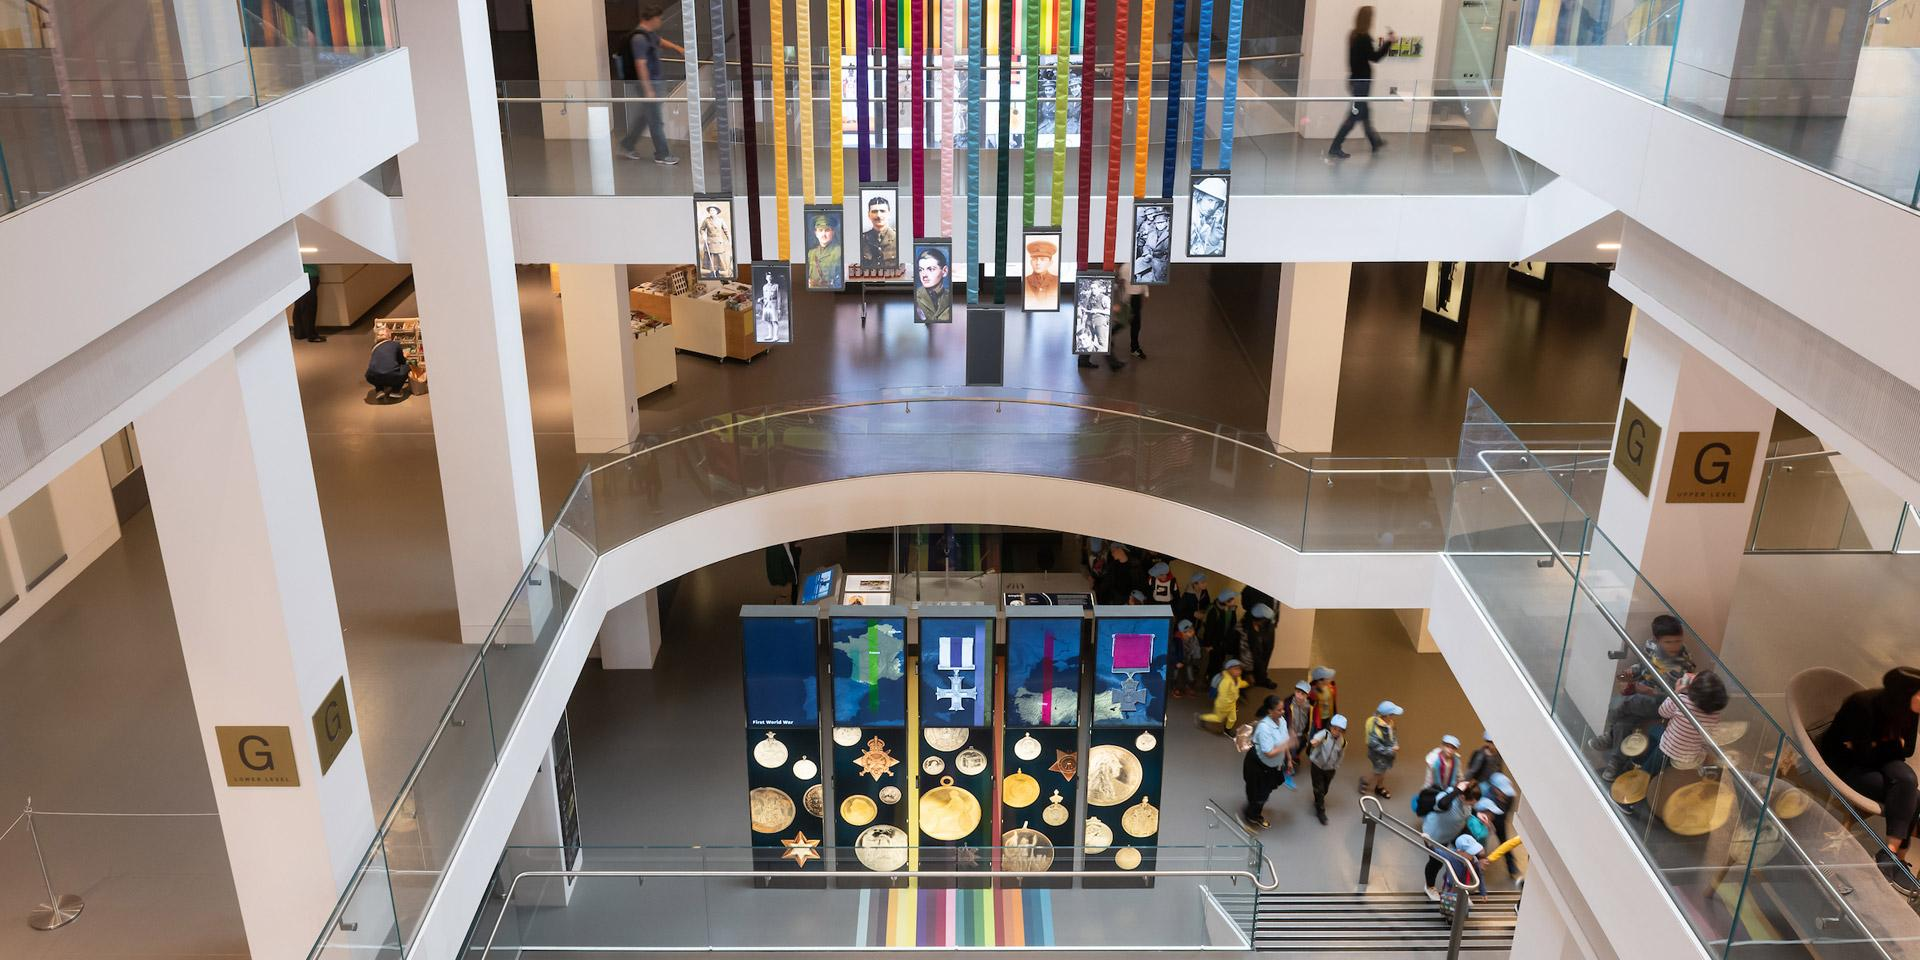 Ribbon display in the atrium